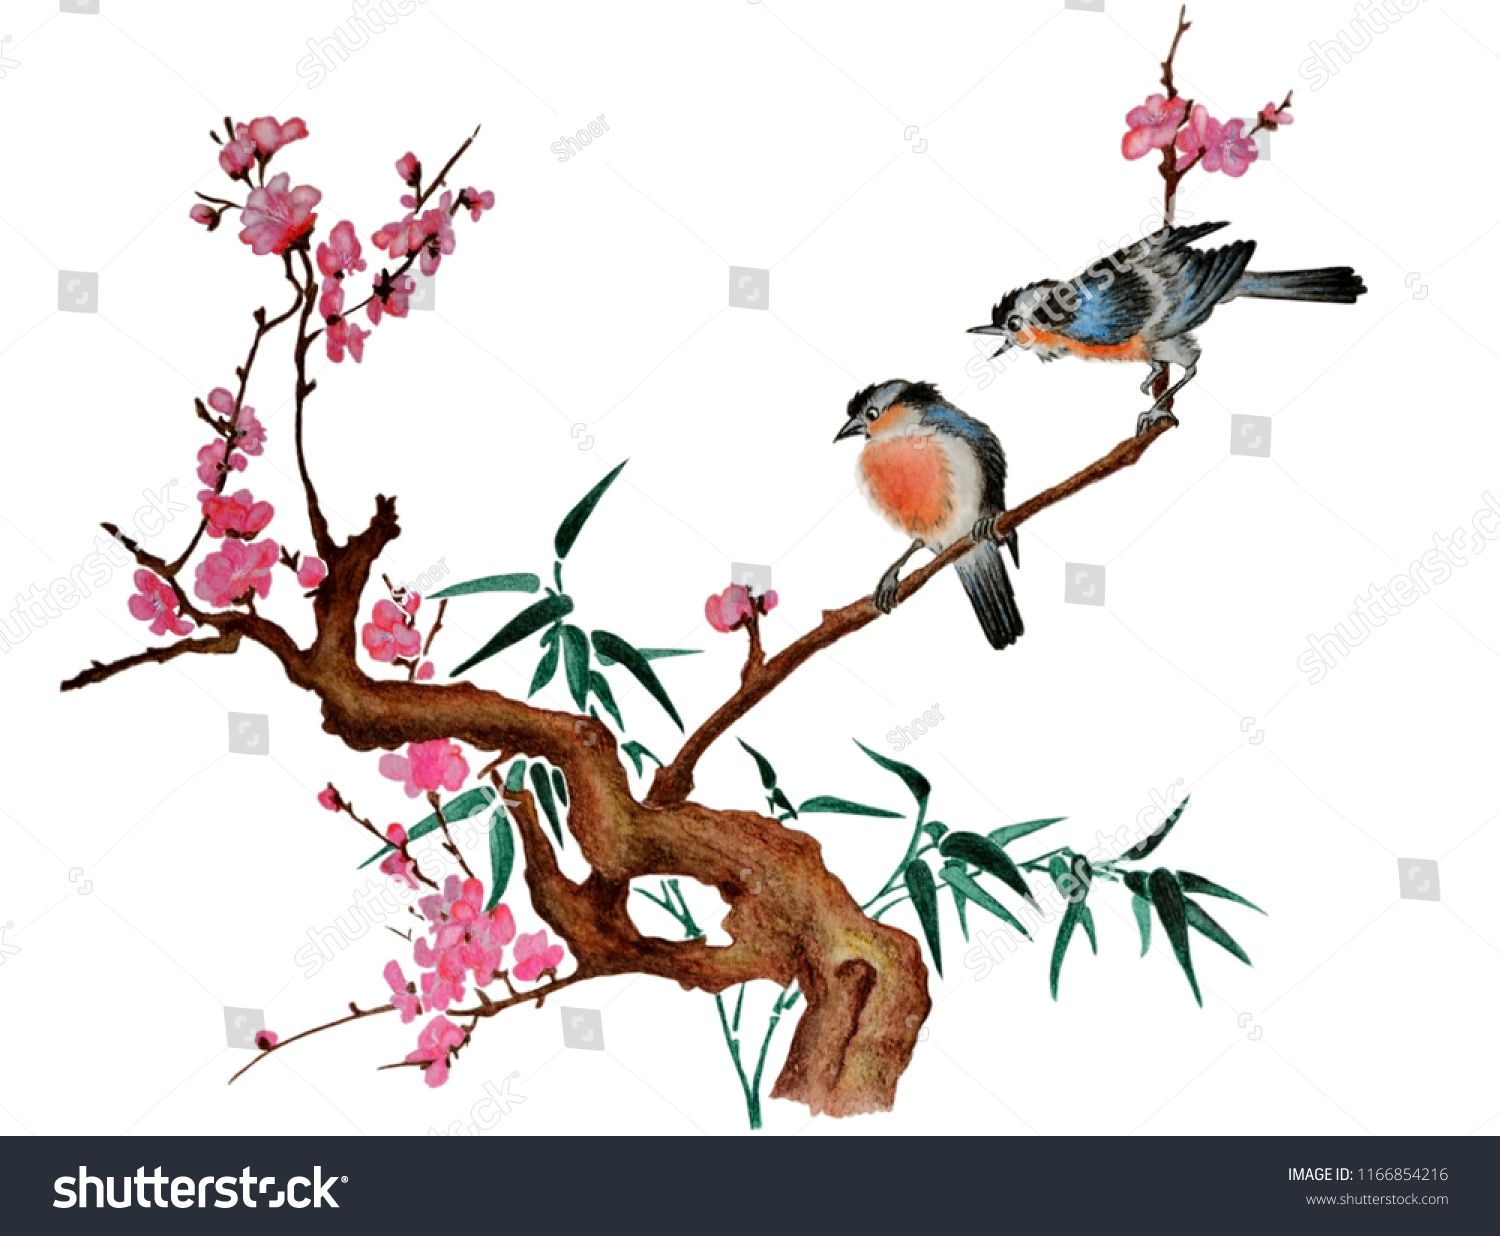 Watercolor Traditional Chinese Painting Of Flowers Cherry